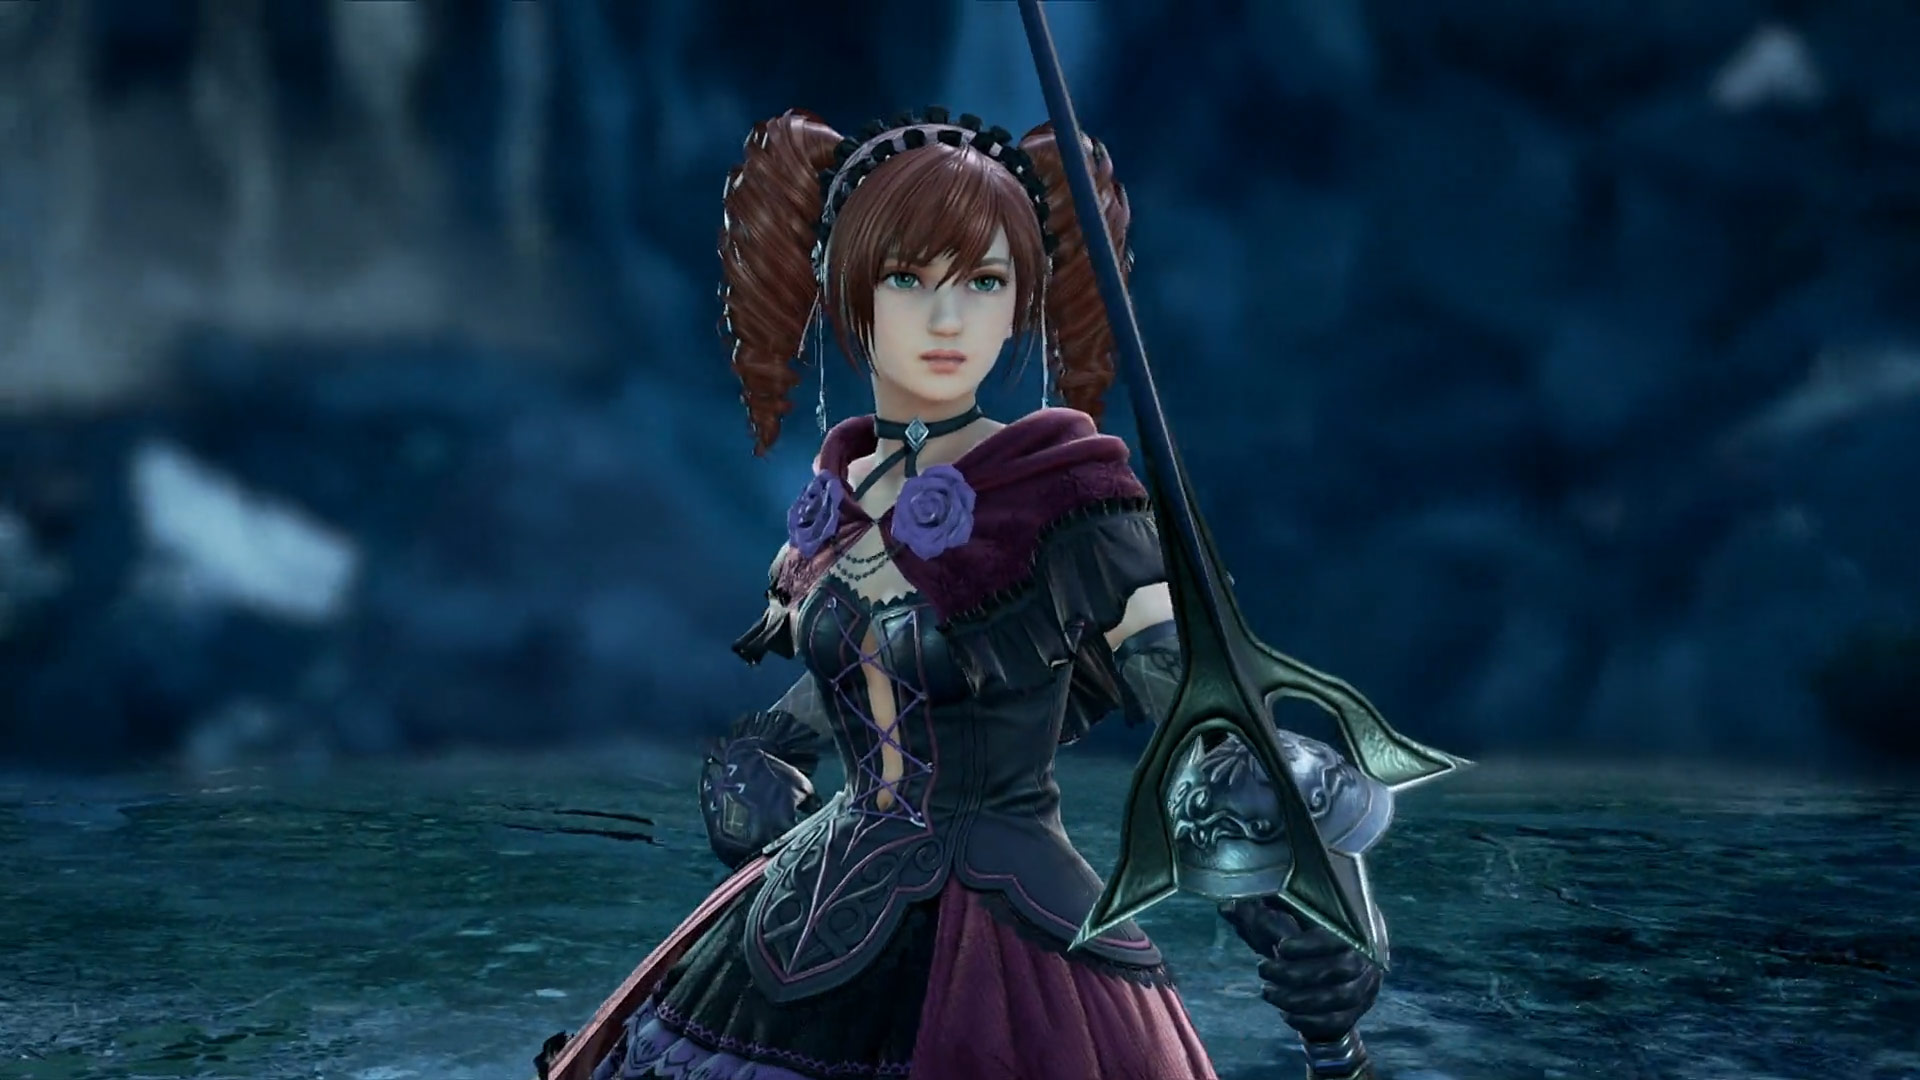 Soul Calibur 6 Amy Reveal 4 out of 9 image gallery